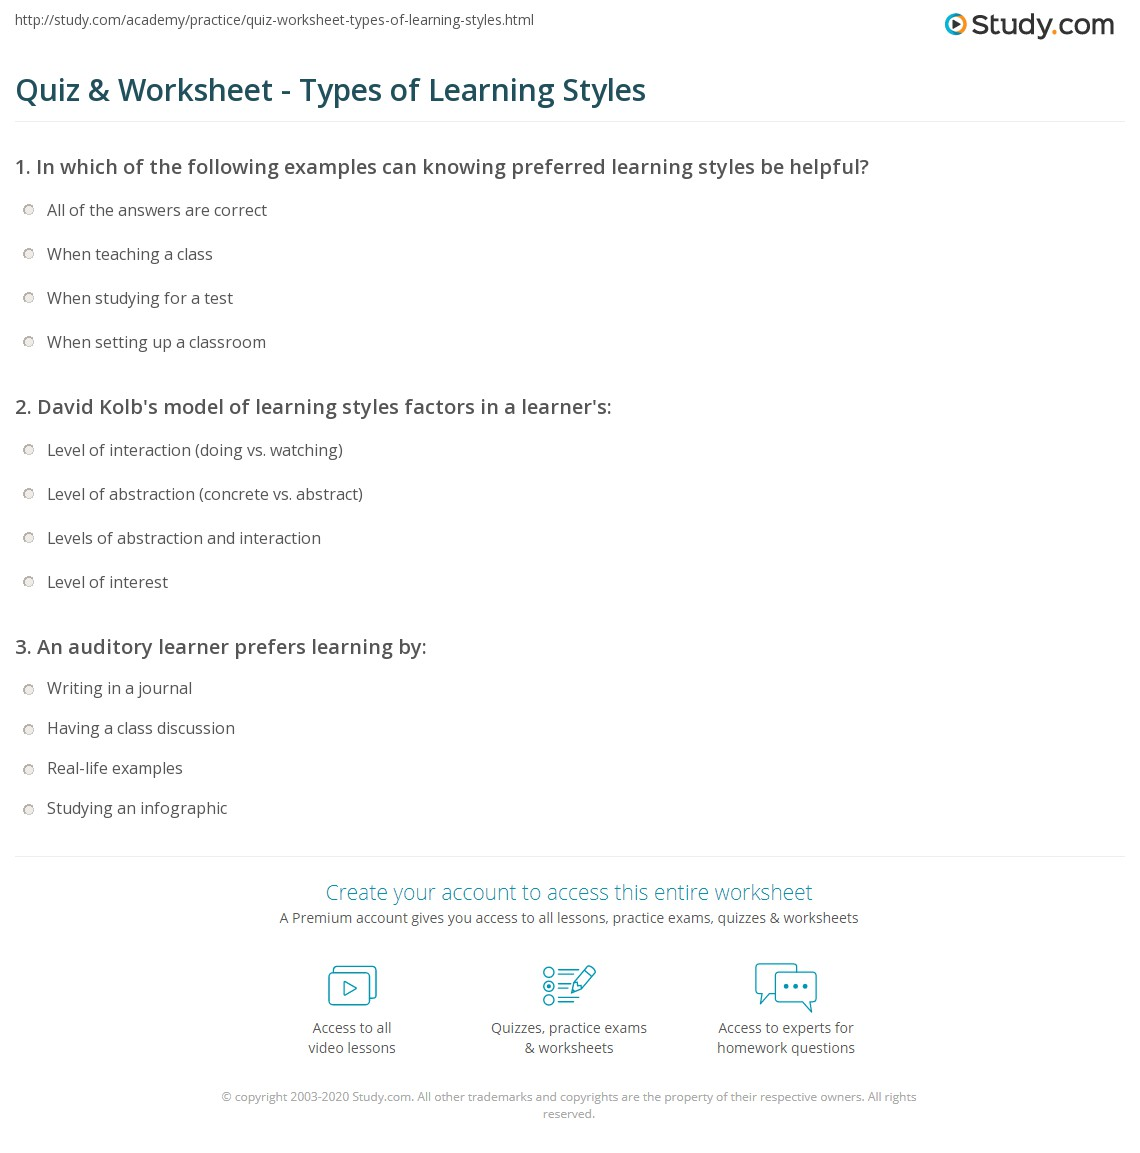 Quiz & Worksheet - Types of Learning Styles | Study.com